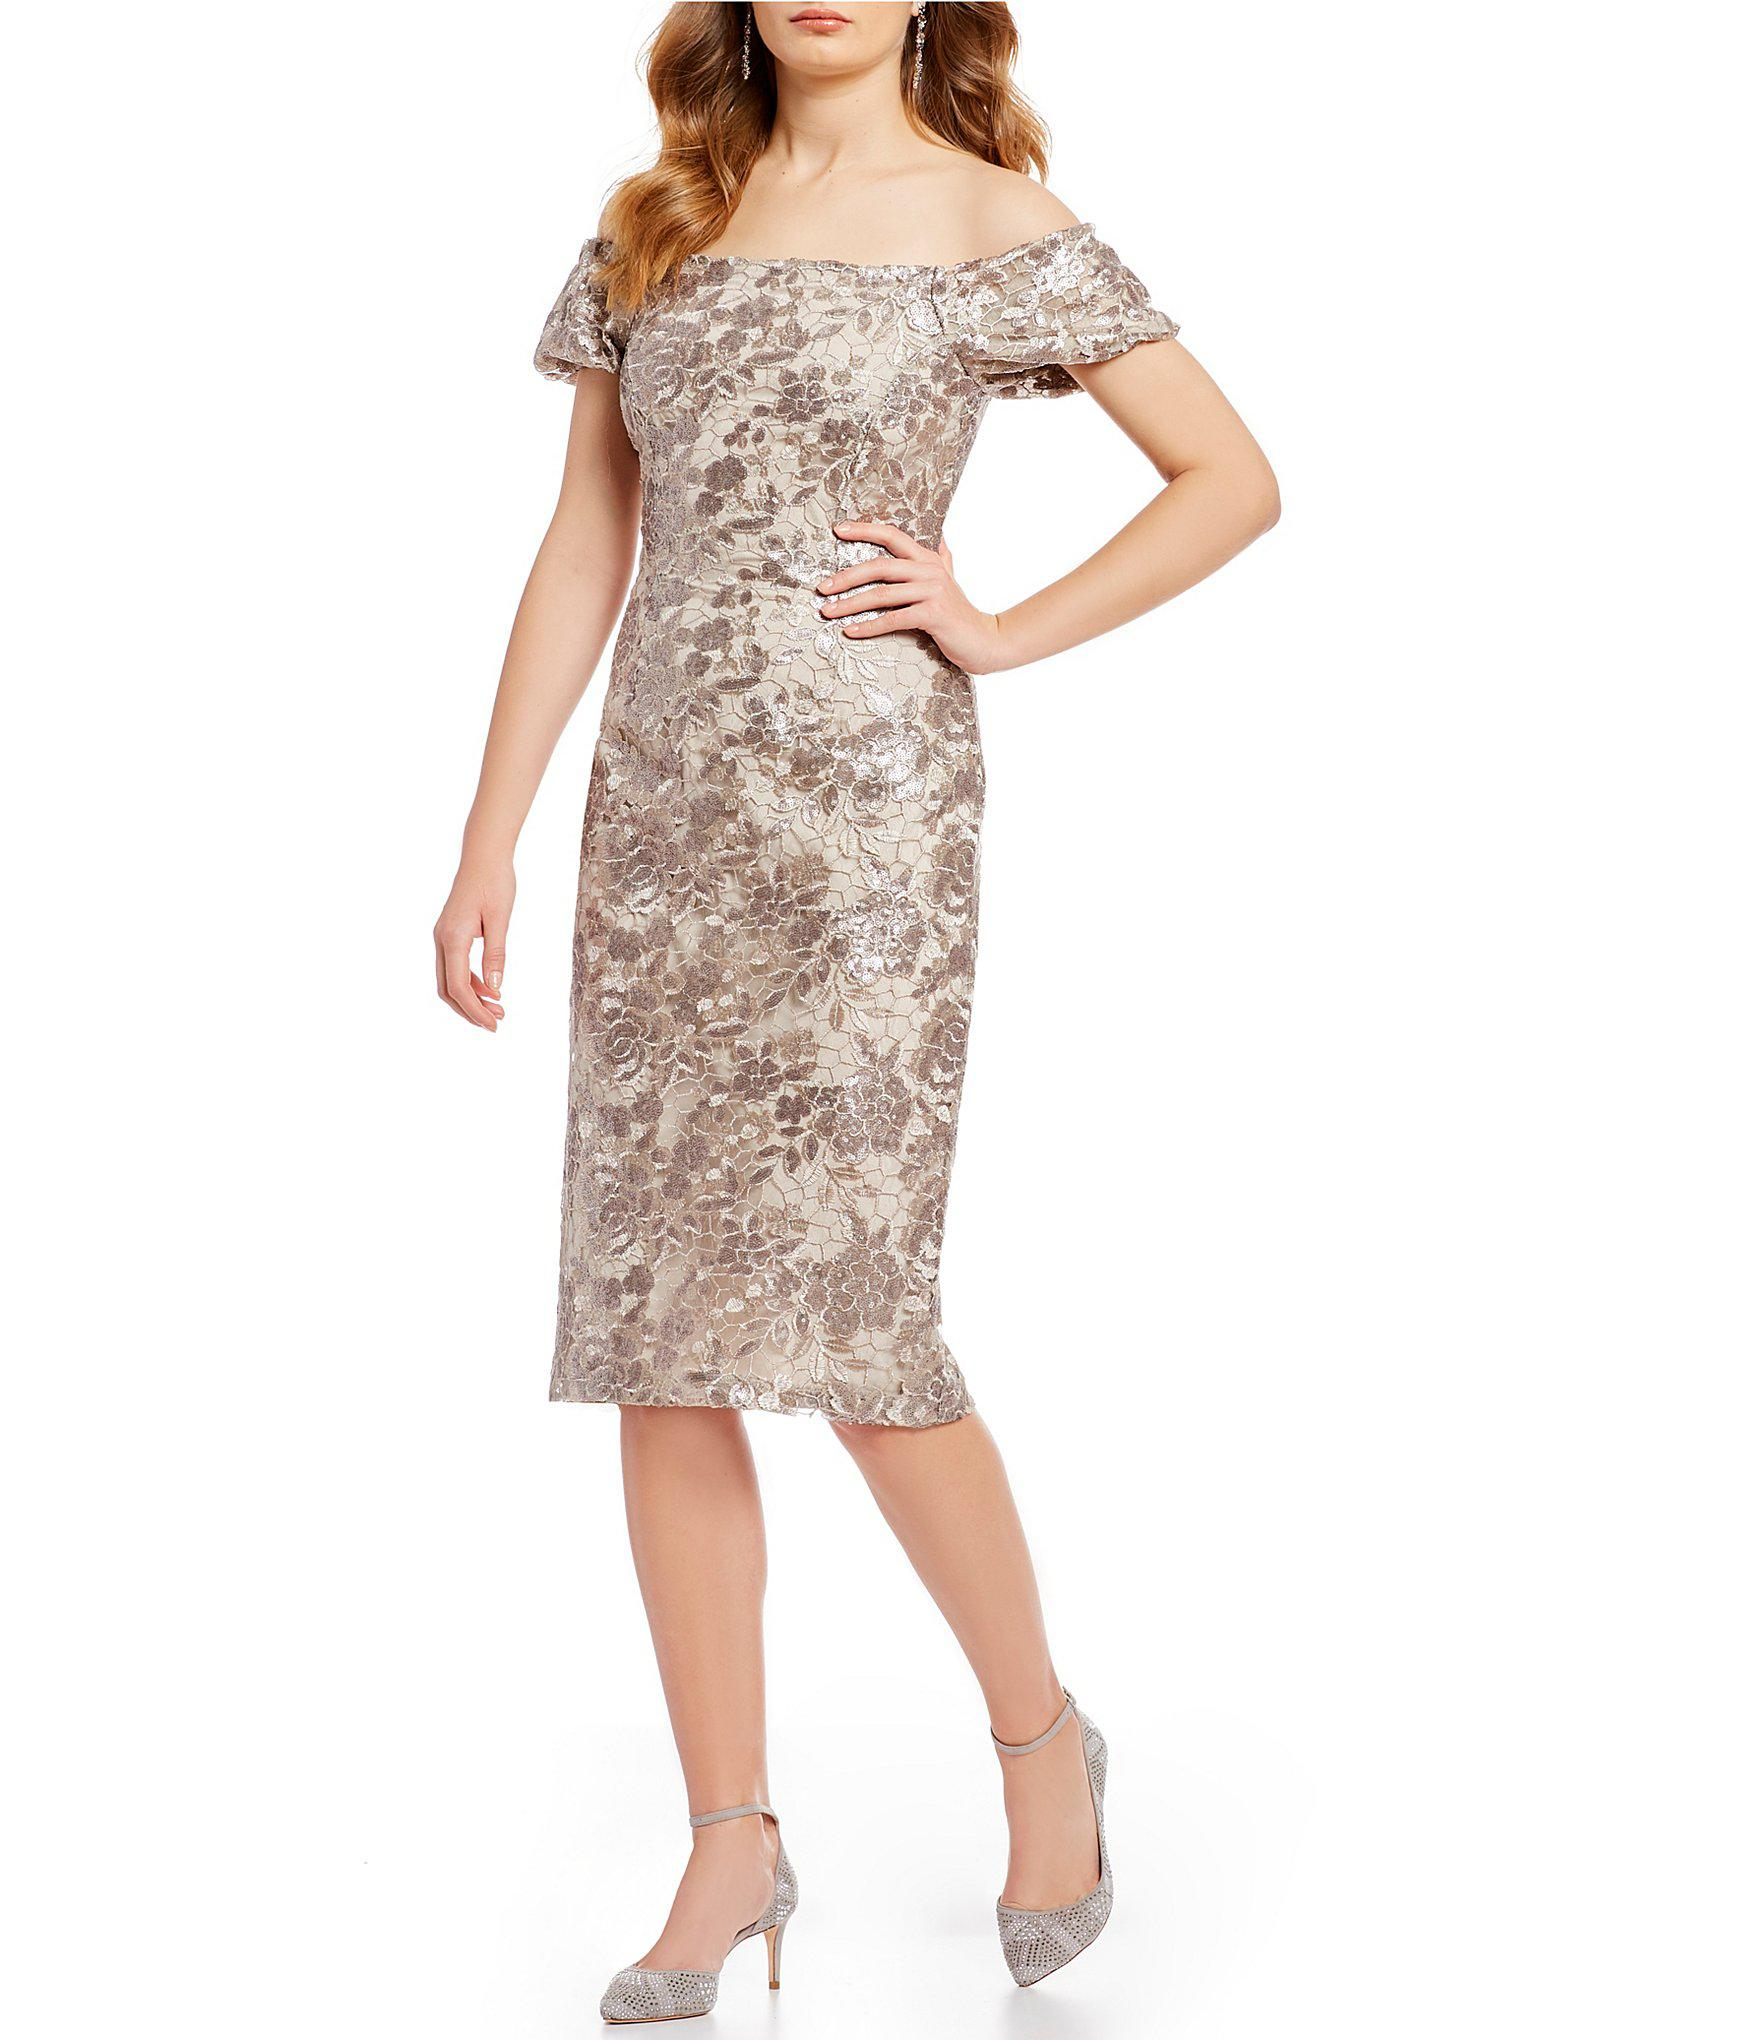 f2688ee1bf Antonio Melani Jenny Dress in Metallic - Lyst